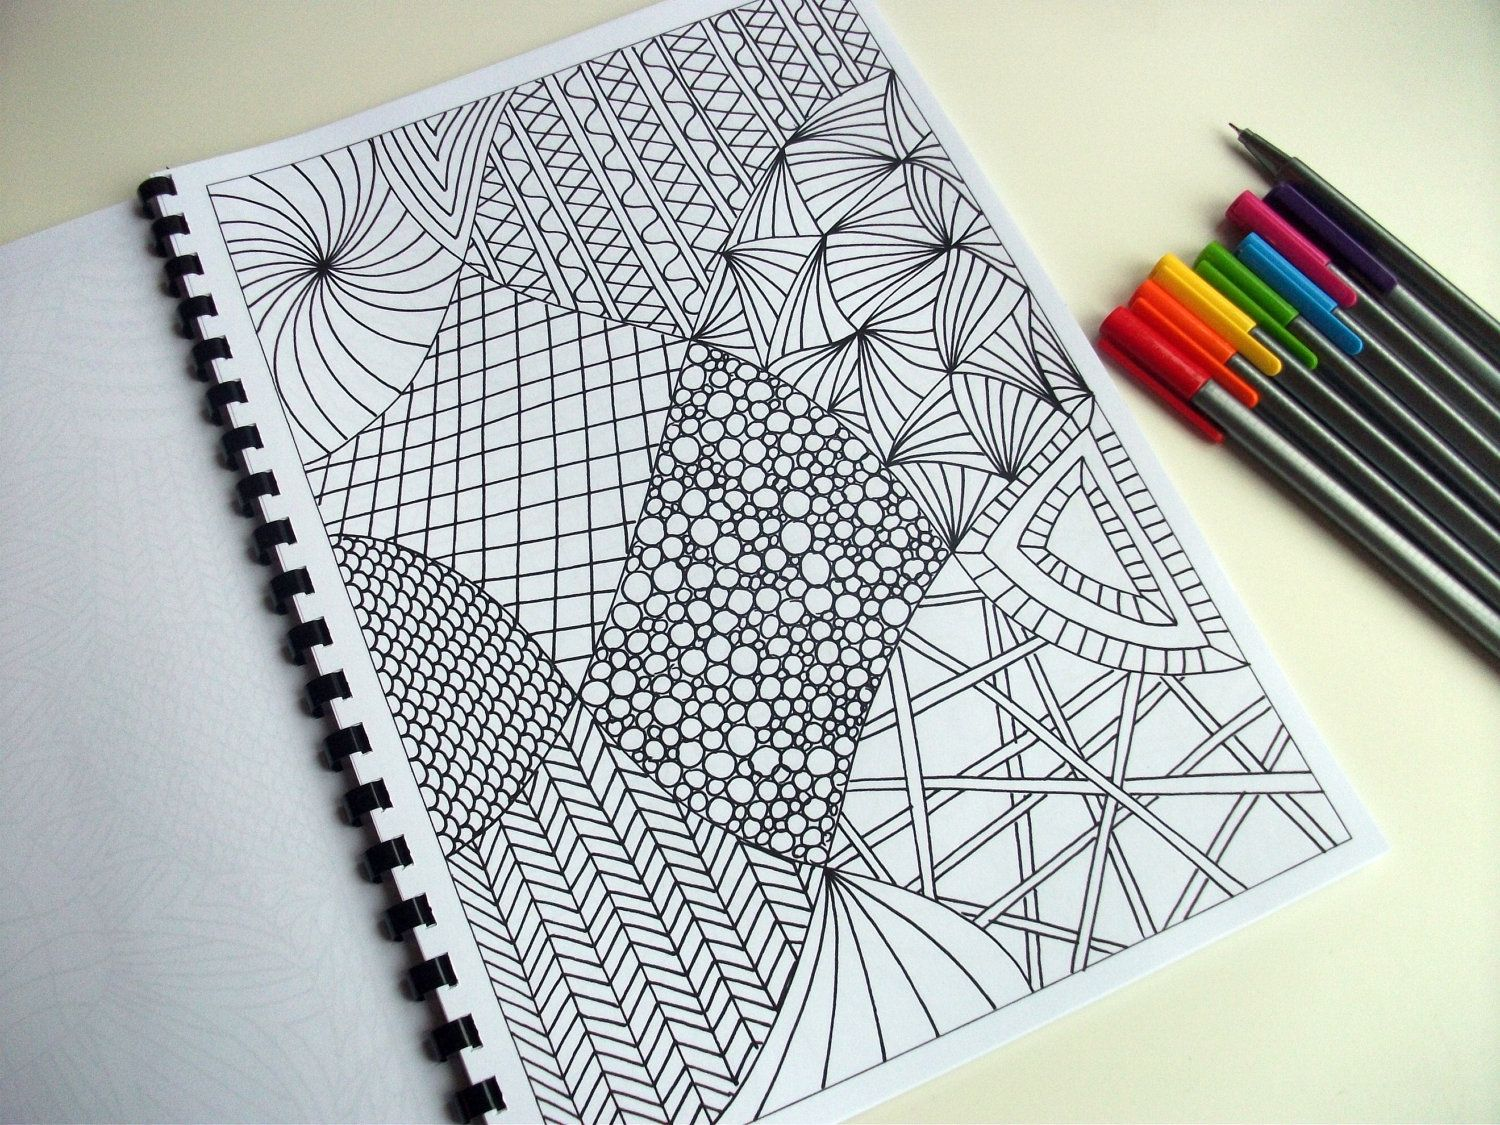 Easy Doodle Art Designs : Printable coloring page zentangle inspired abstract art